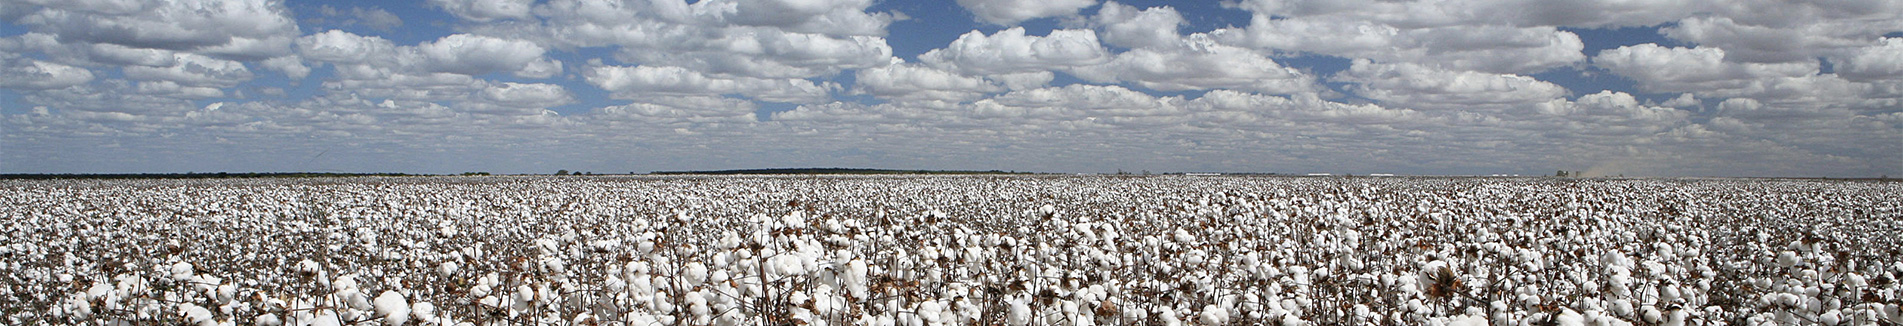 stock-photo-cotton-plantation-with-blue-sky-and-white-clouds-485087506_banner.jpg